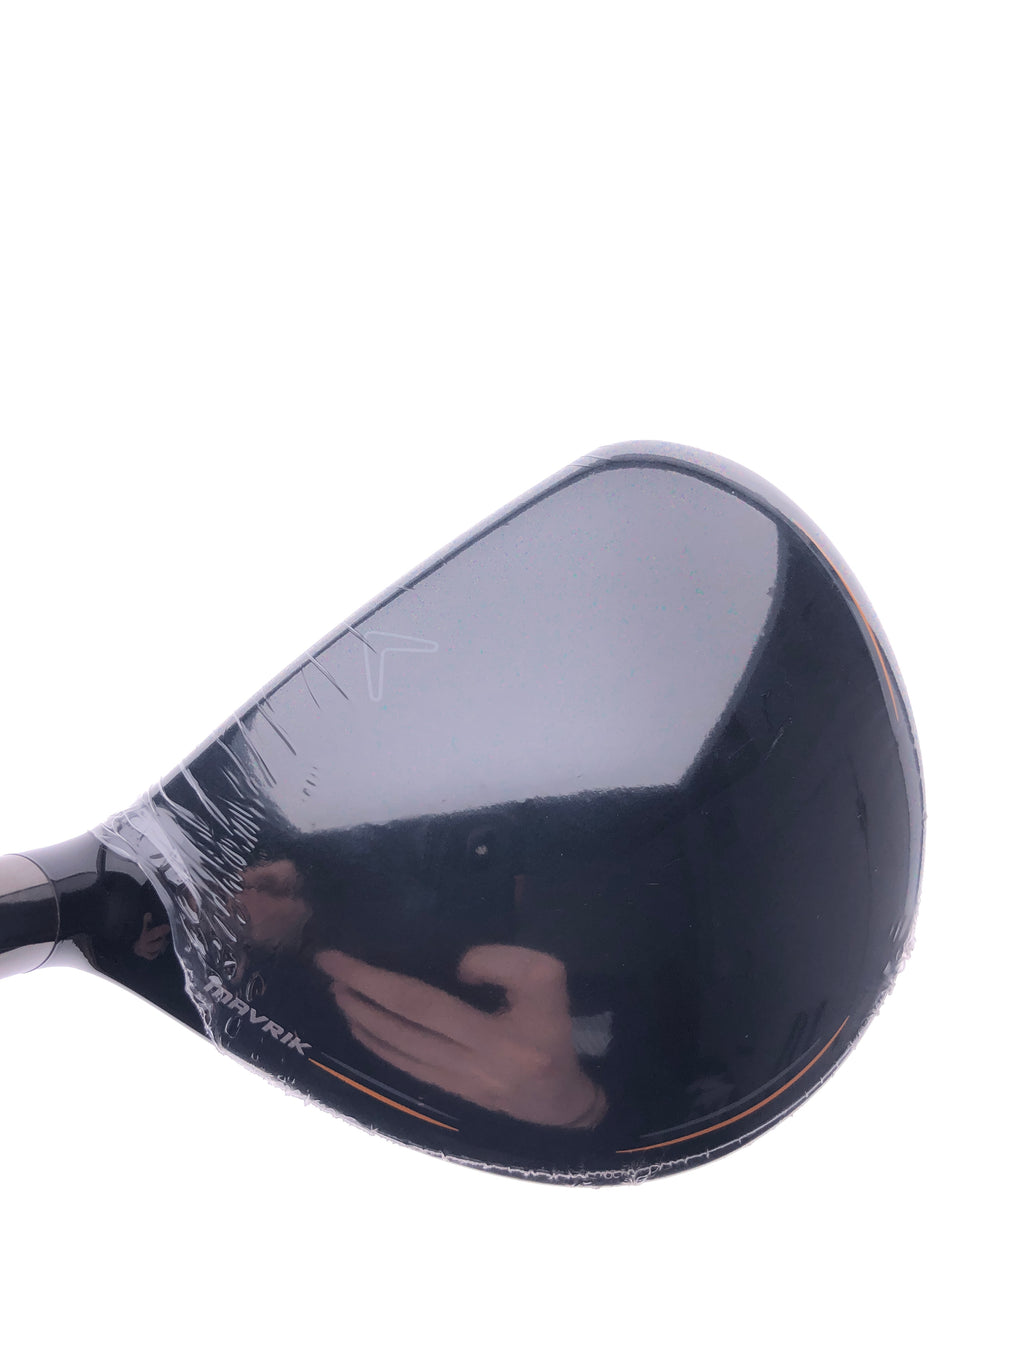 Yonex VMX Driver / 10.5 Degree / Graphite Regular Flex / Right Handed